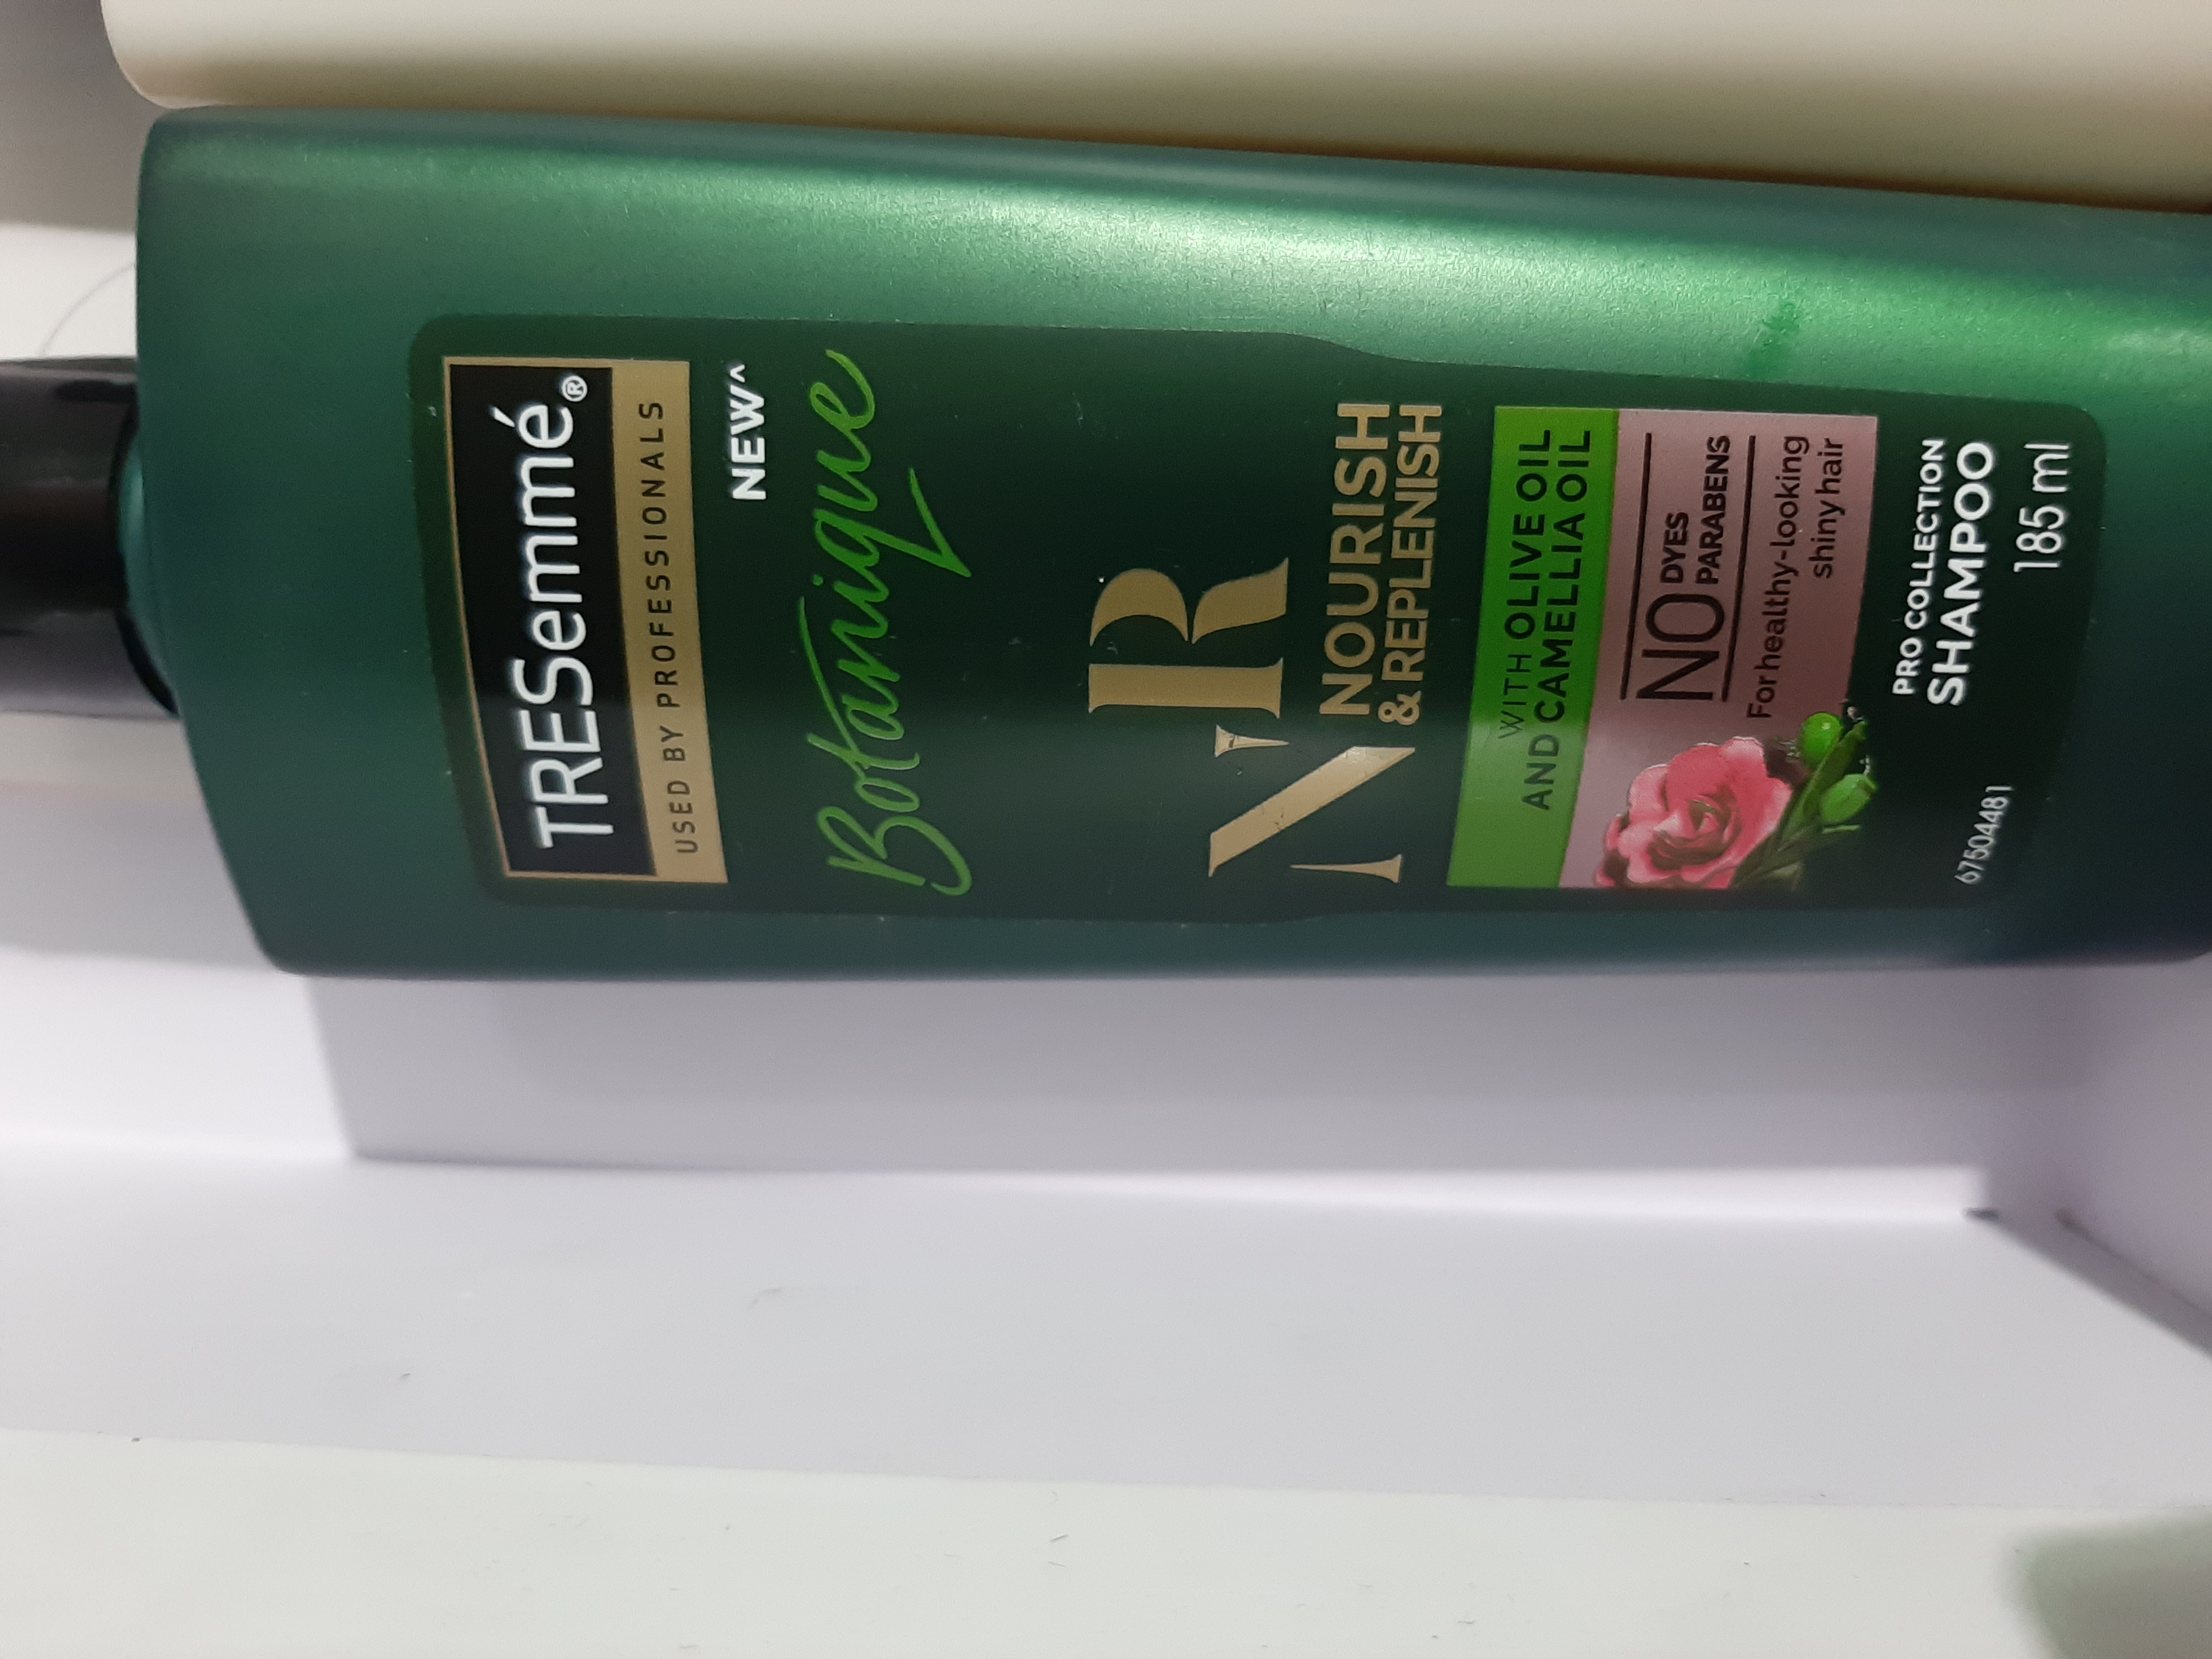 Tresemme Botanique Nourish And Replenish Shampoo-Must- have product for smooth and silky hair.-By humakhan-1